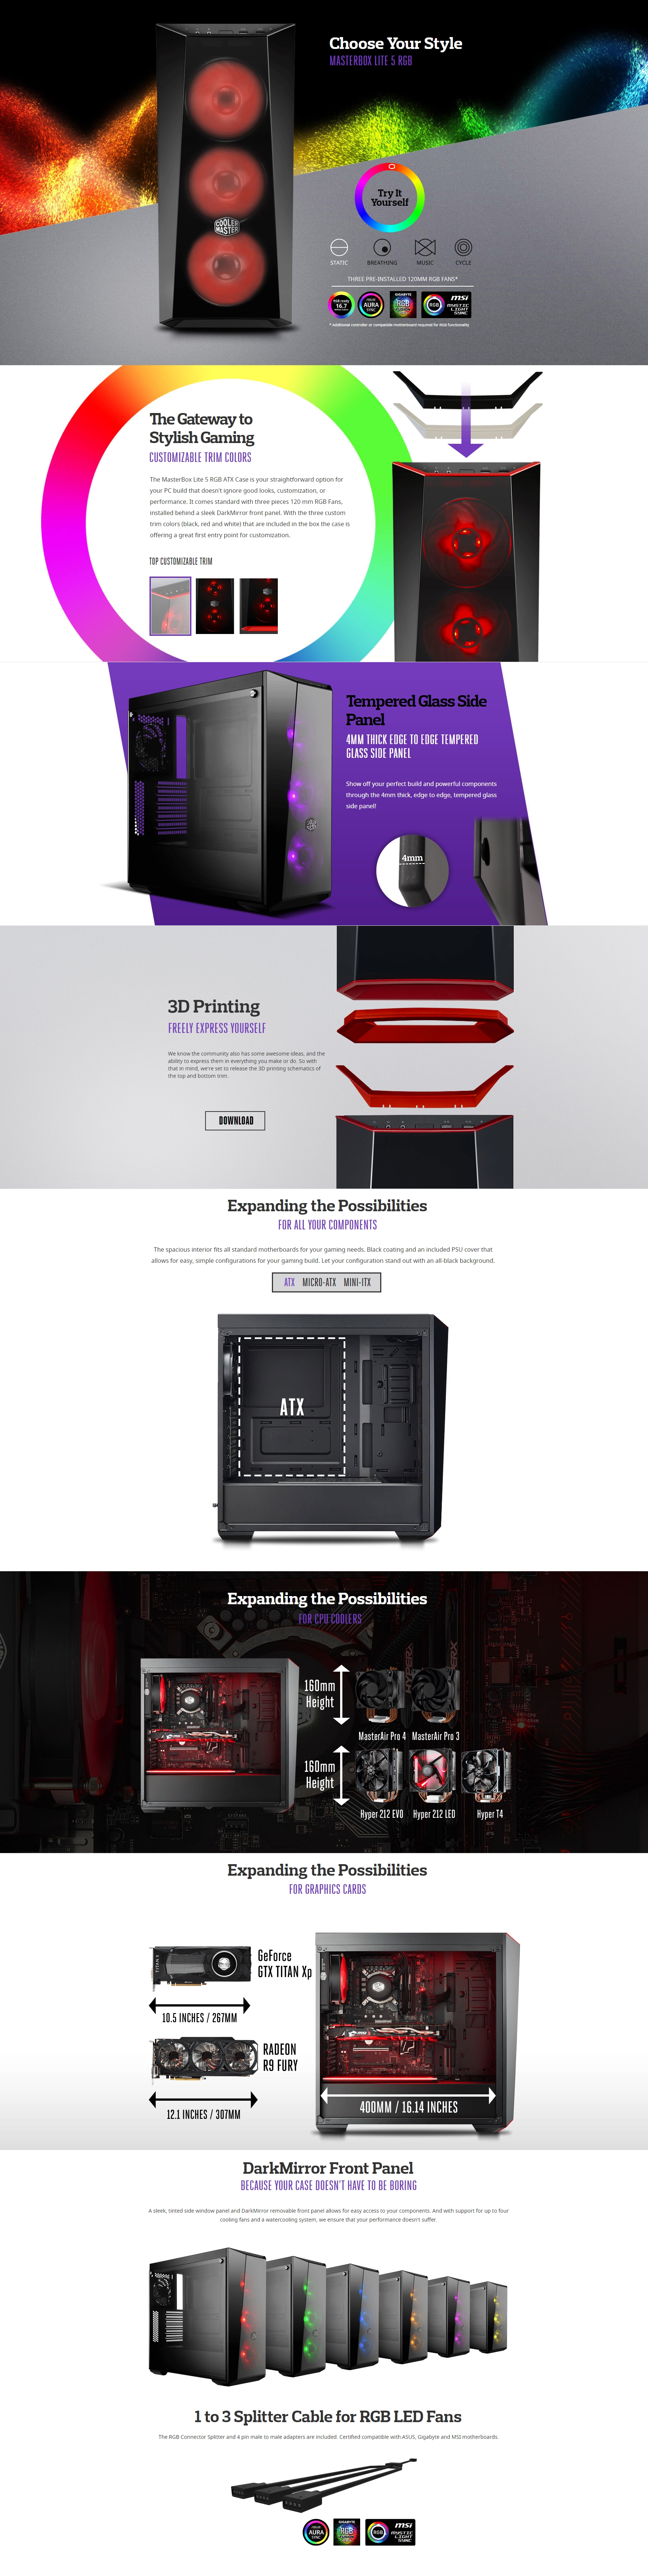 A large marketing image providing additional information about the product Cooler Master MasterBox Lite 5 RGB Mid Tower Case w/Side Panel Window - Additional alt info not provided